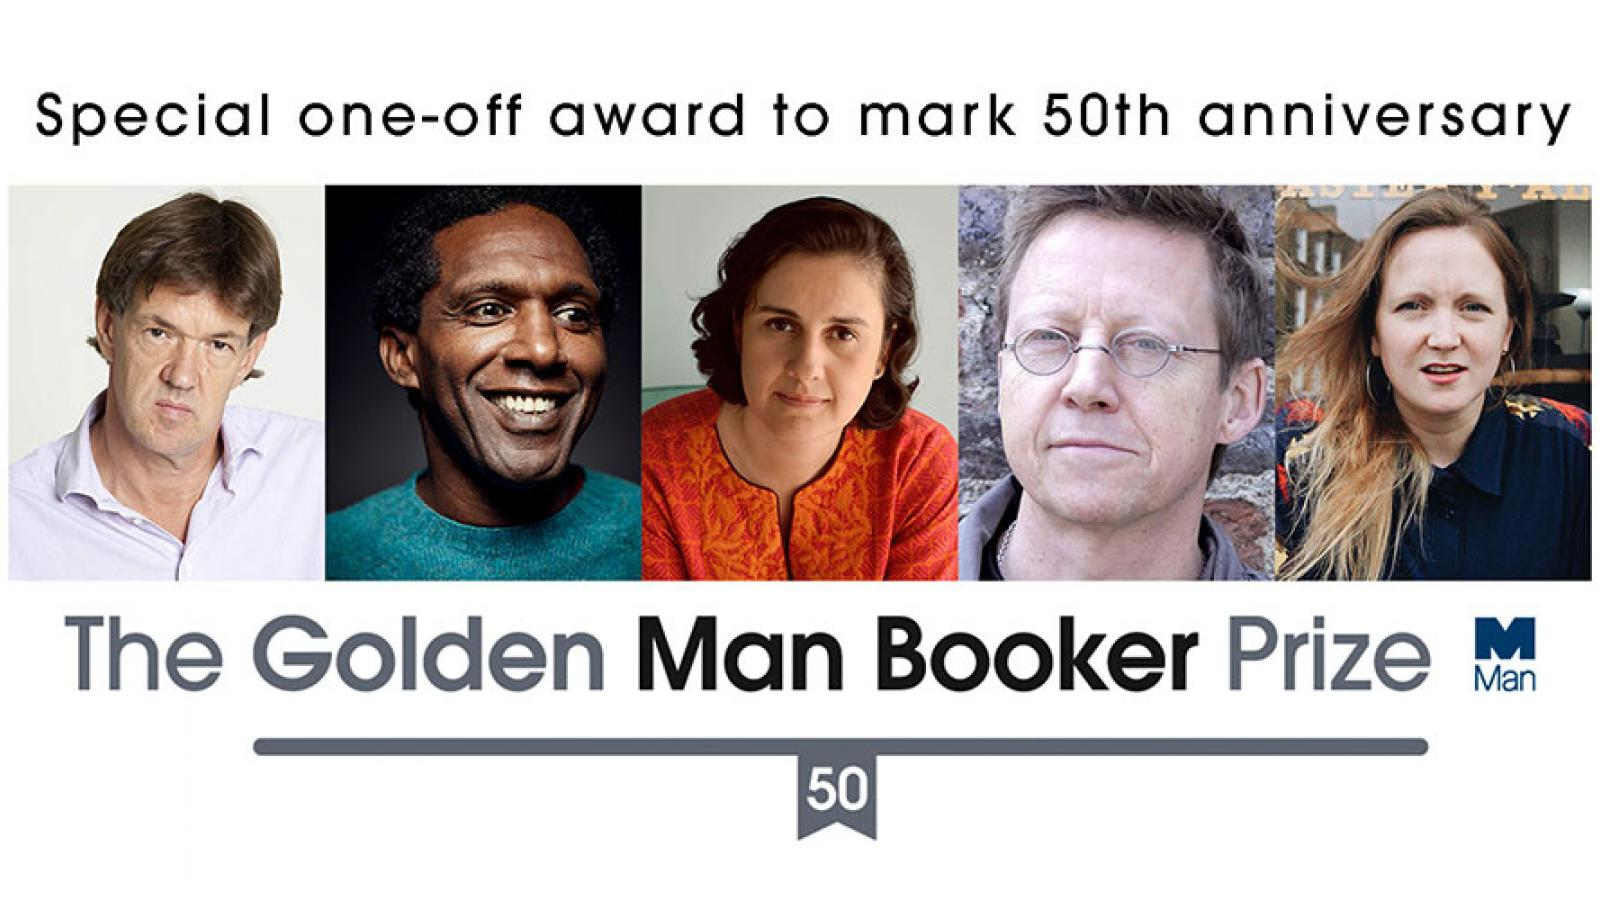 the-golden-man-booker-prize.jpg